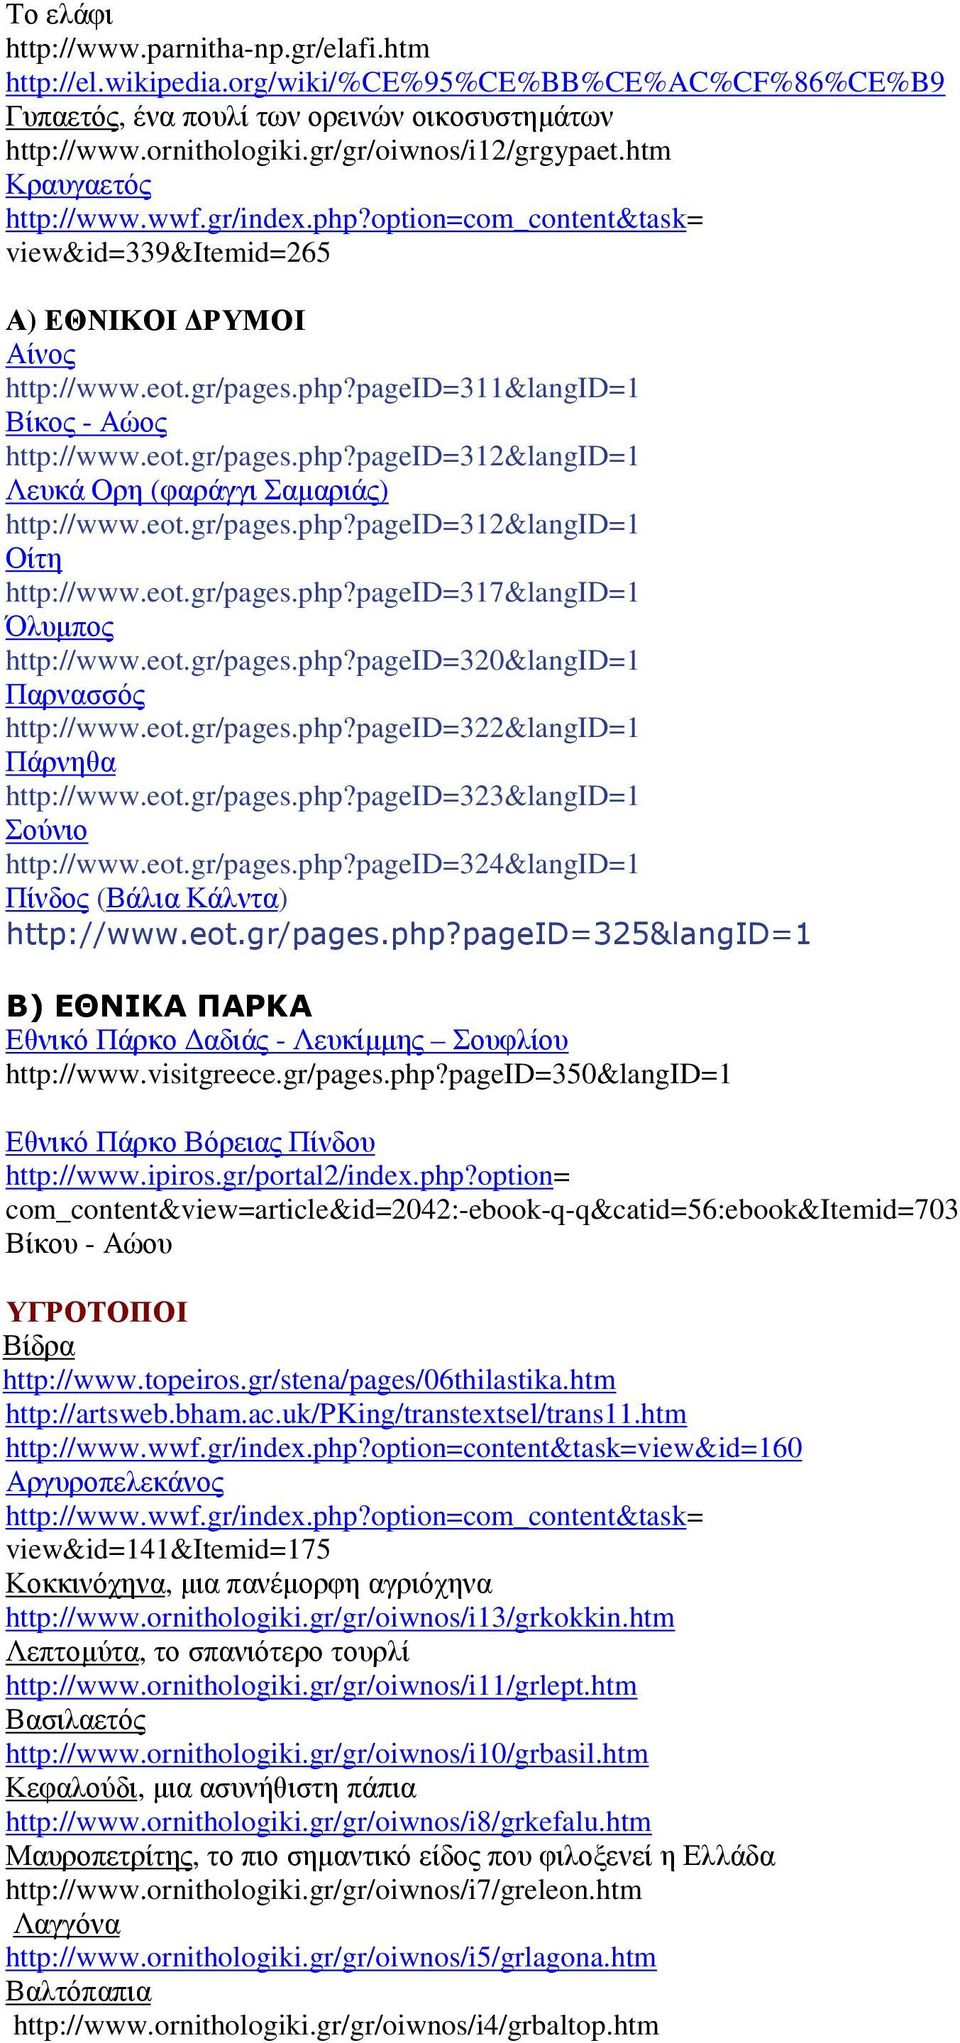 eot.gr/pages.php?pageid=312&langid=1 Λευκά Ορη (φαράγγι Σαµαριάς) http://www.eot.gr/pages.php?pageid=312&langid=1 Οίτη http://www.eot.gr/pages.php?pageid=317&langid=1 Όλυµπος http://www.eot.gr/pages.php?pageid=320&langid=1 Παρνασσός http://www.